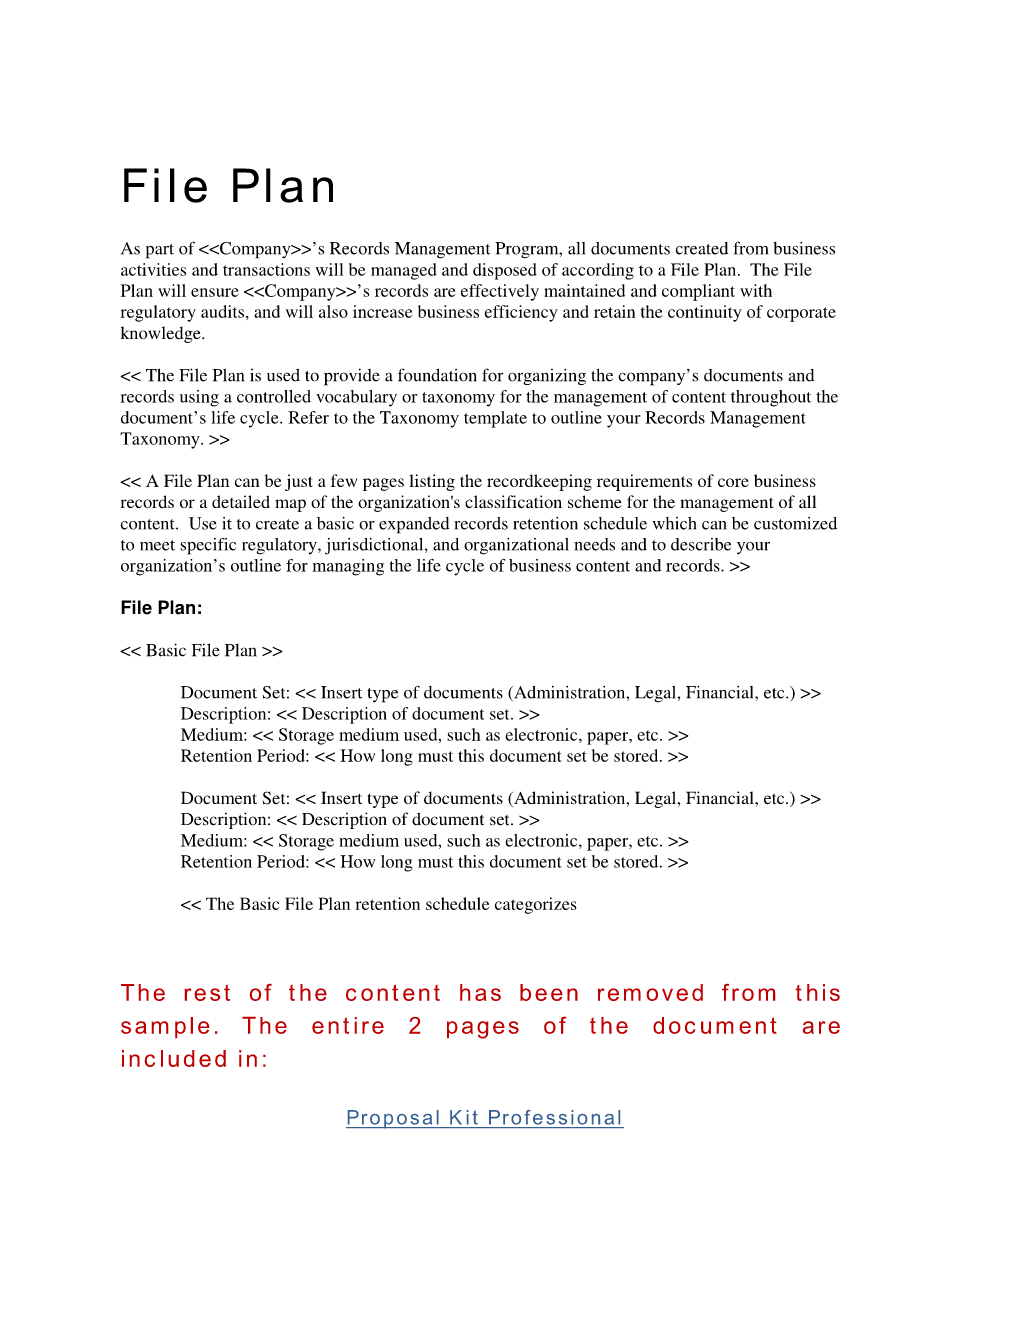 Data Management Policy Template Records Management File Plan Template Hundreds Of Project Management Documents Available From